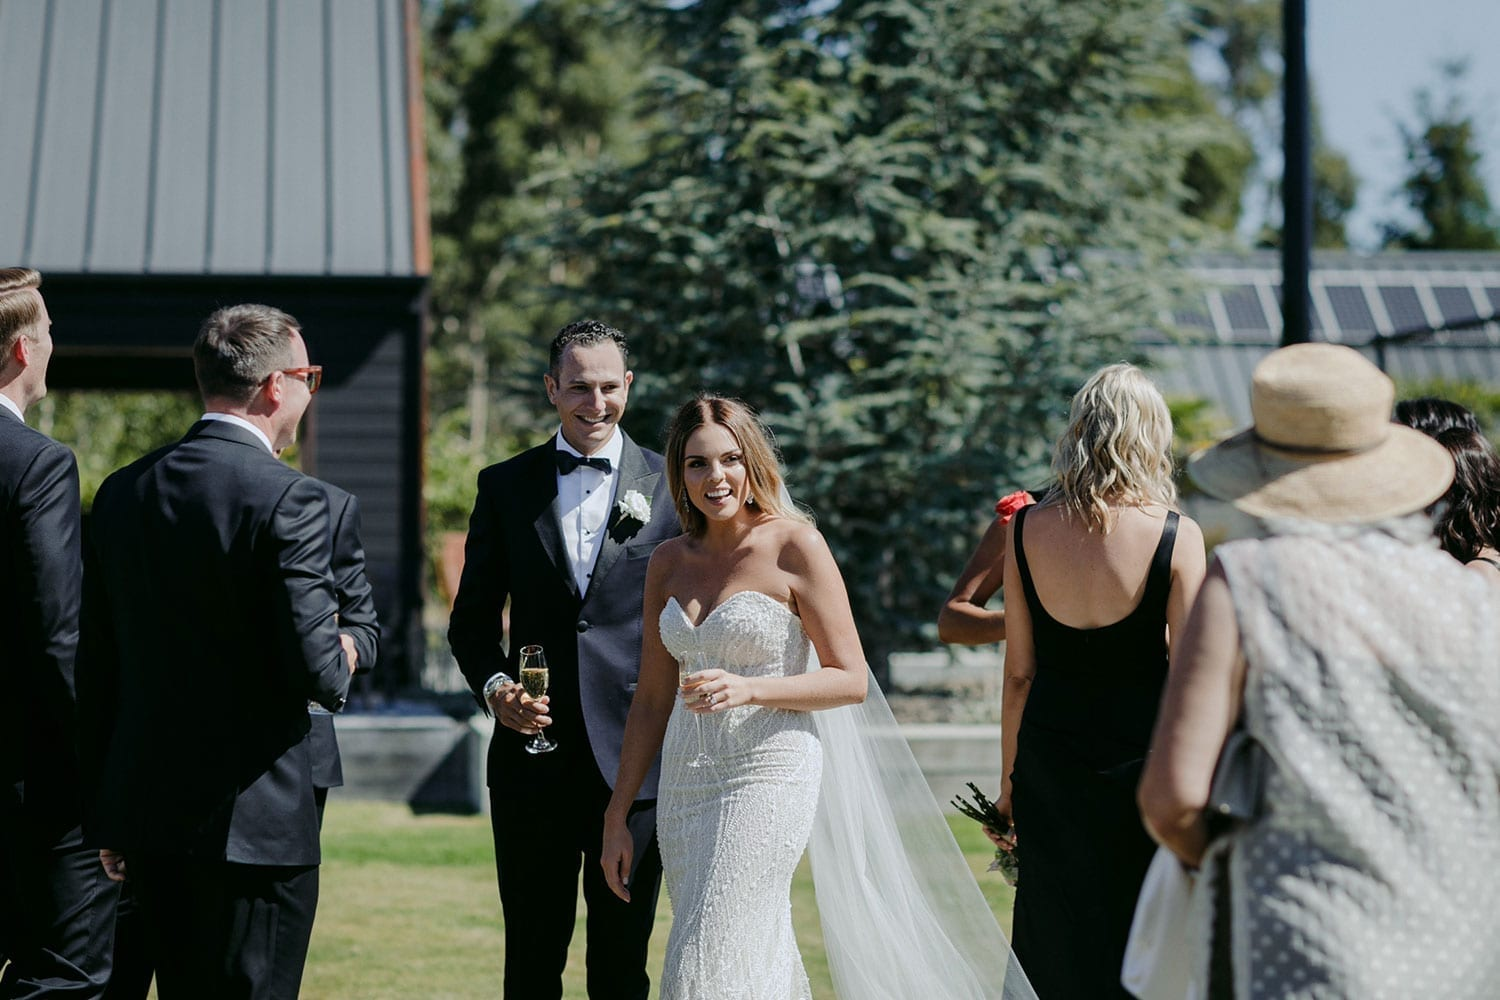 Vinka Design Features Real Weddings - bride in custom made gown, a combination of our Indi wedding dress with added beading appliqued and sewn by hand, over the top of a nude semi sheer base. With guests outdoors in sunlight